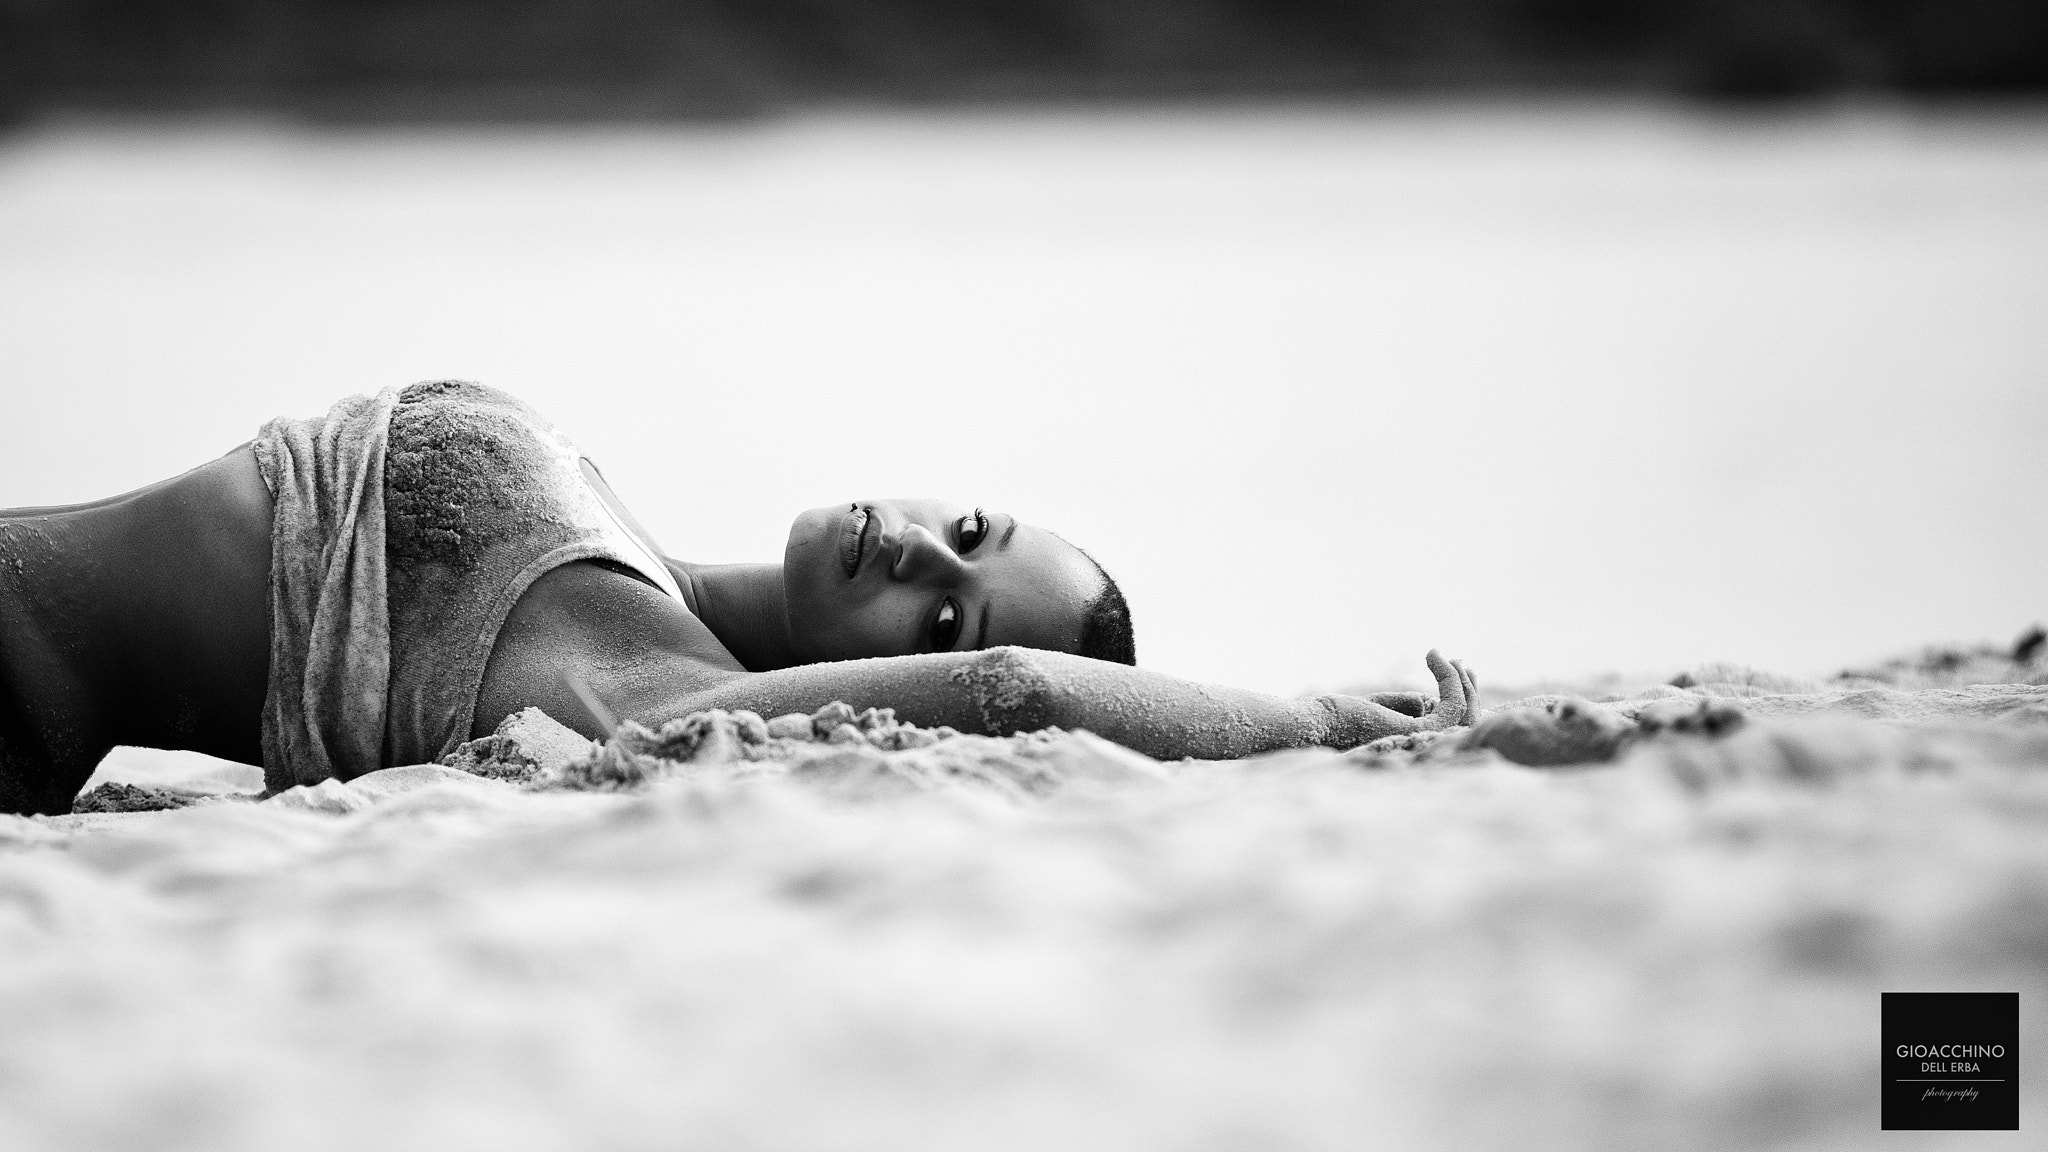 Photograph strandperle... by Giacchi Dell Erba on 500px